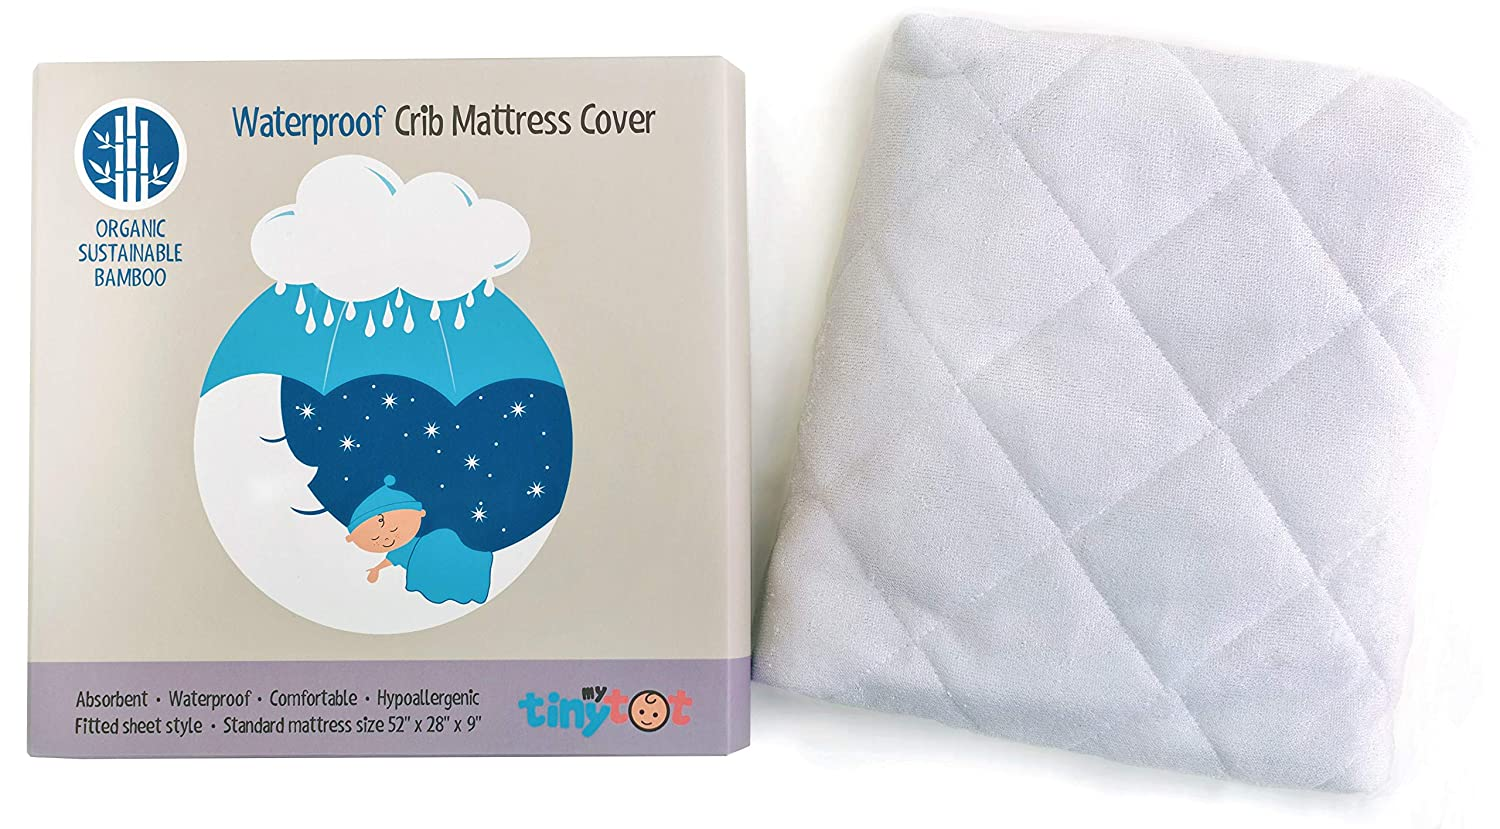 """Waterproof Mattress Protector for Baby & Toddler – 100% Organic, Hypoallergenic Bamboo Mattress Cover Crib Mattress Protector – The Perfect Cloud-Soft Mattress Pad for Little Ones (52"""" x 28"""")"""